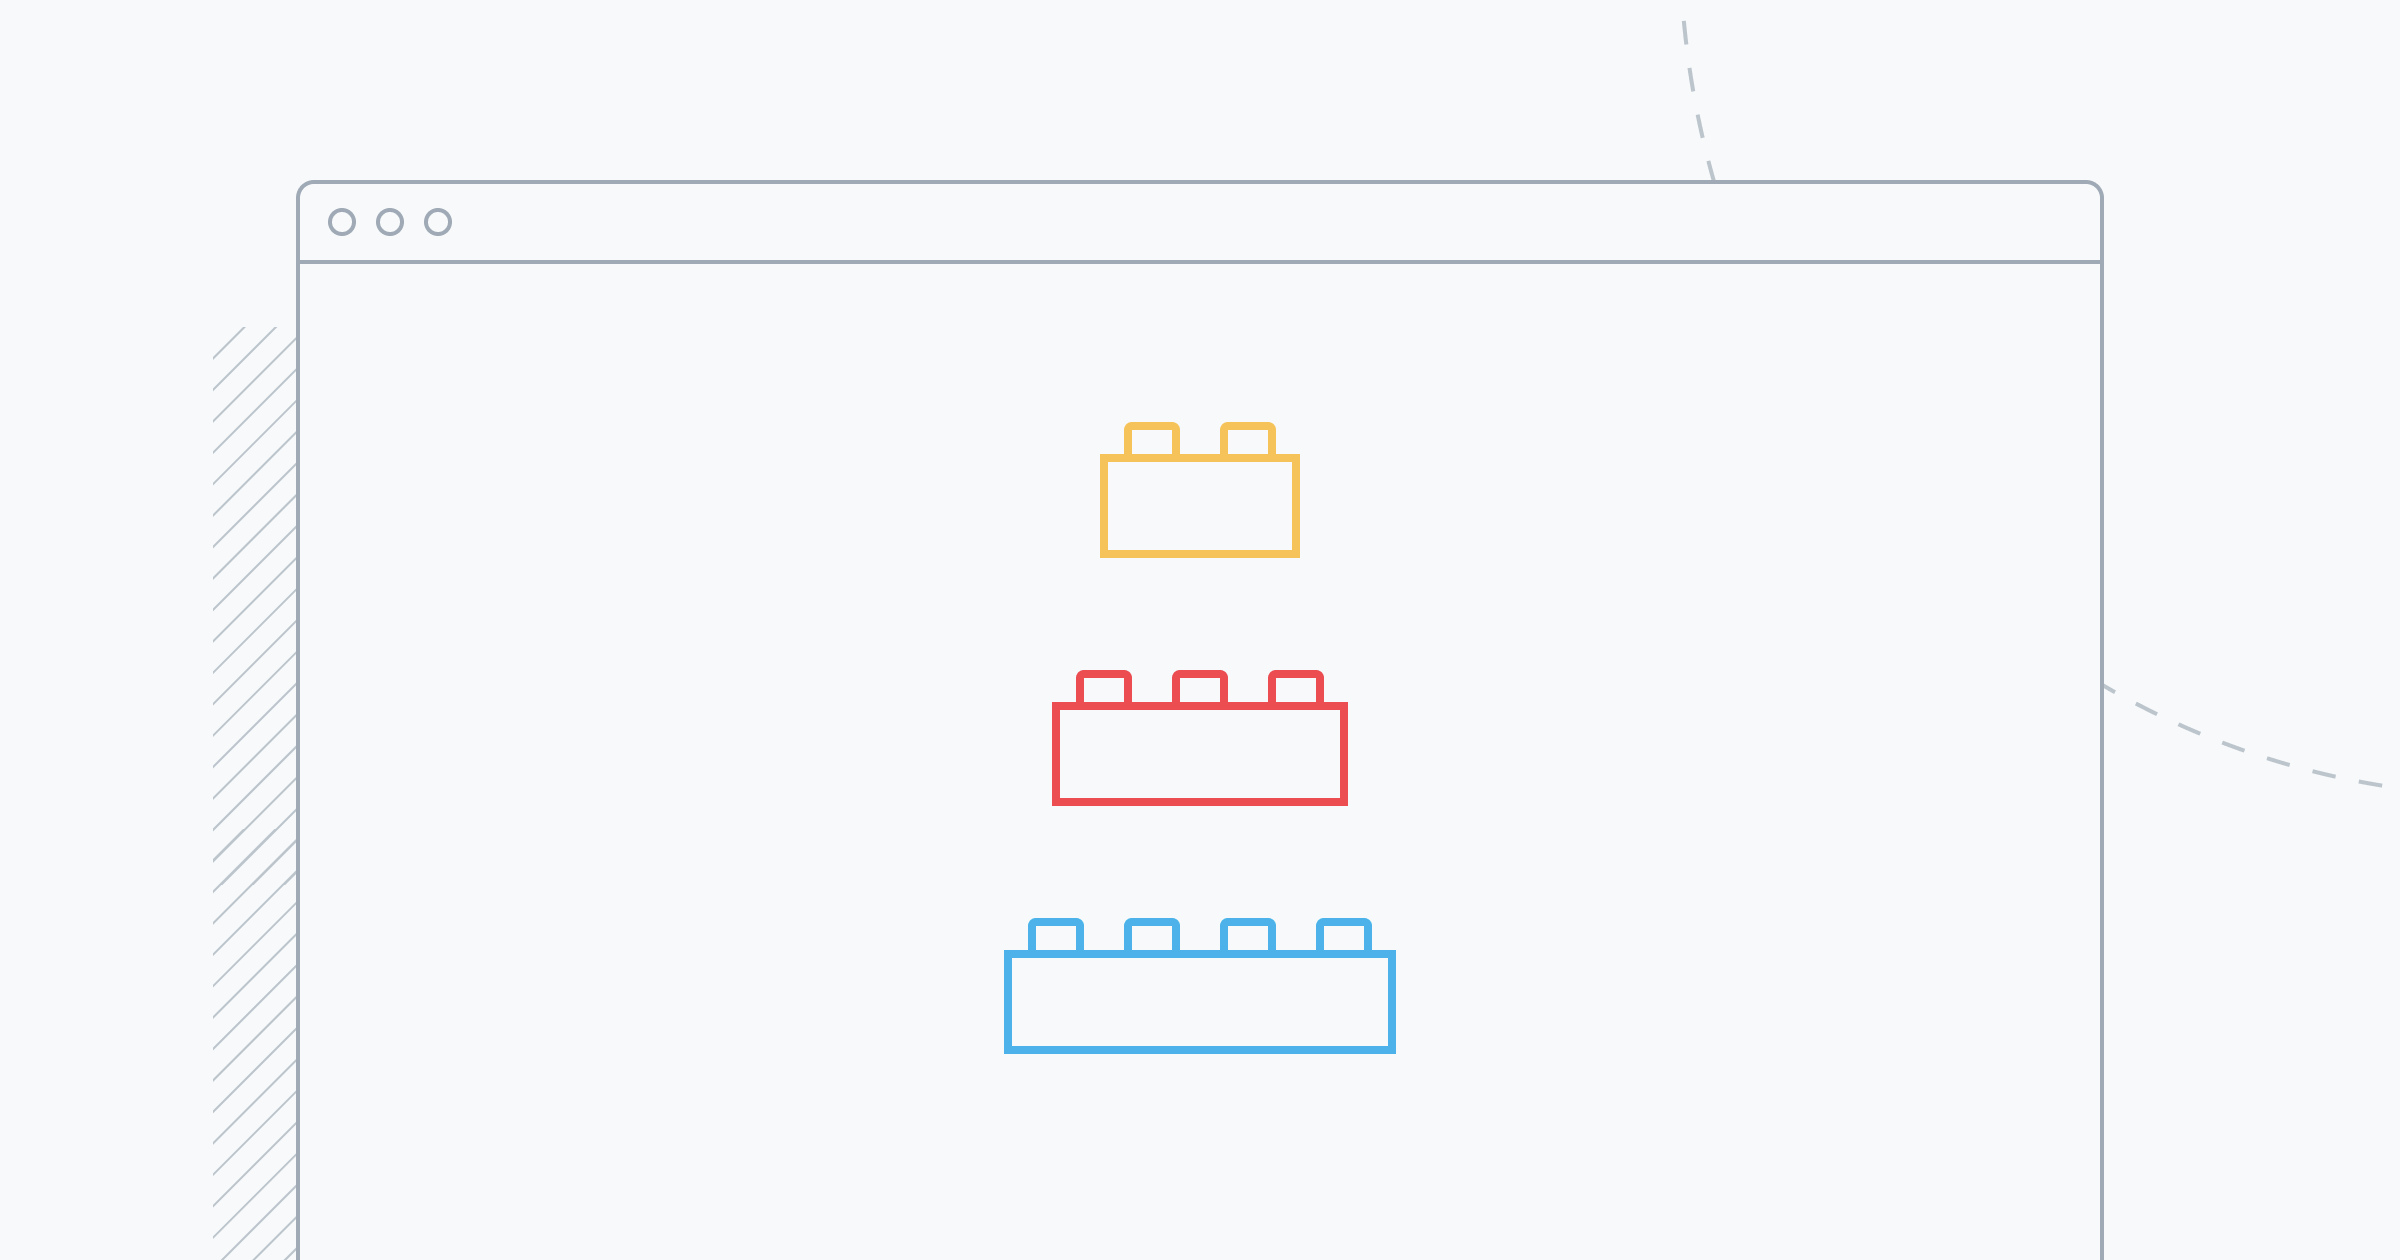 What business problems do design systems solve and how do they bring business value?